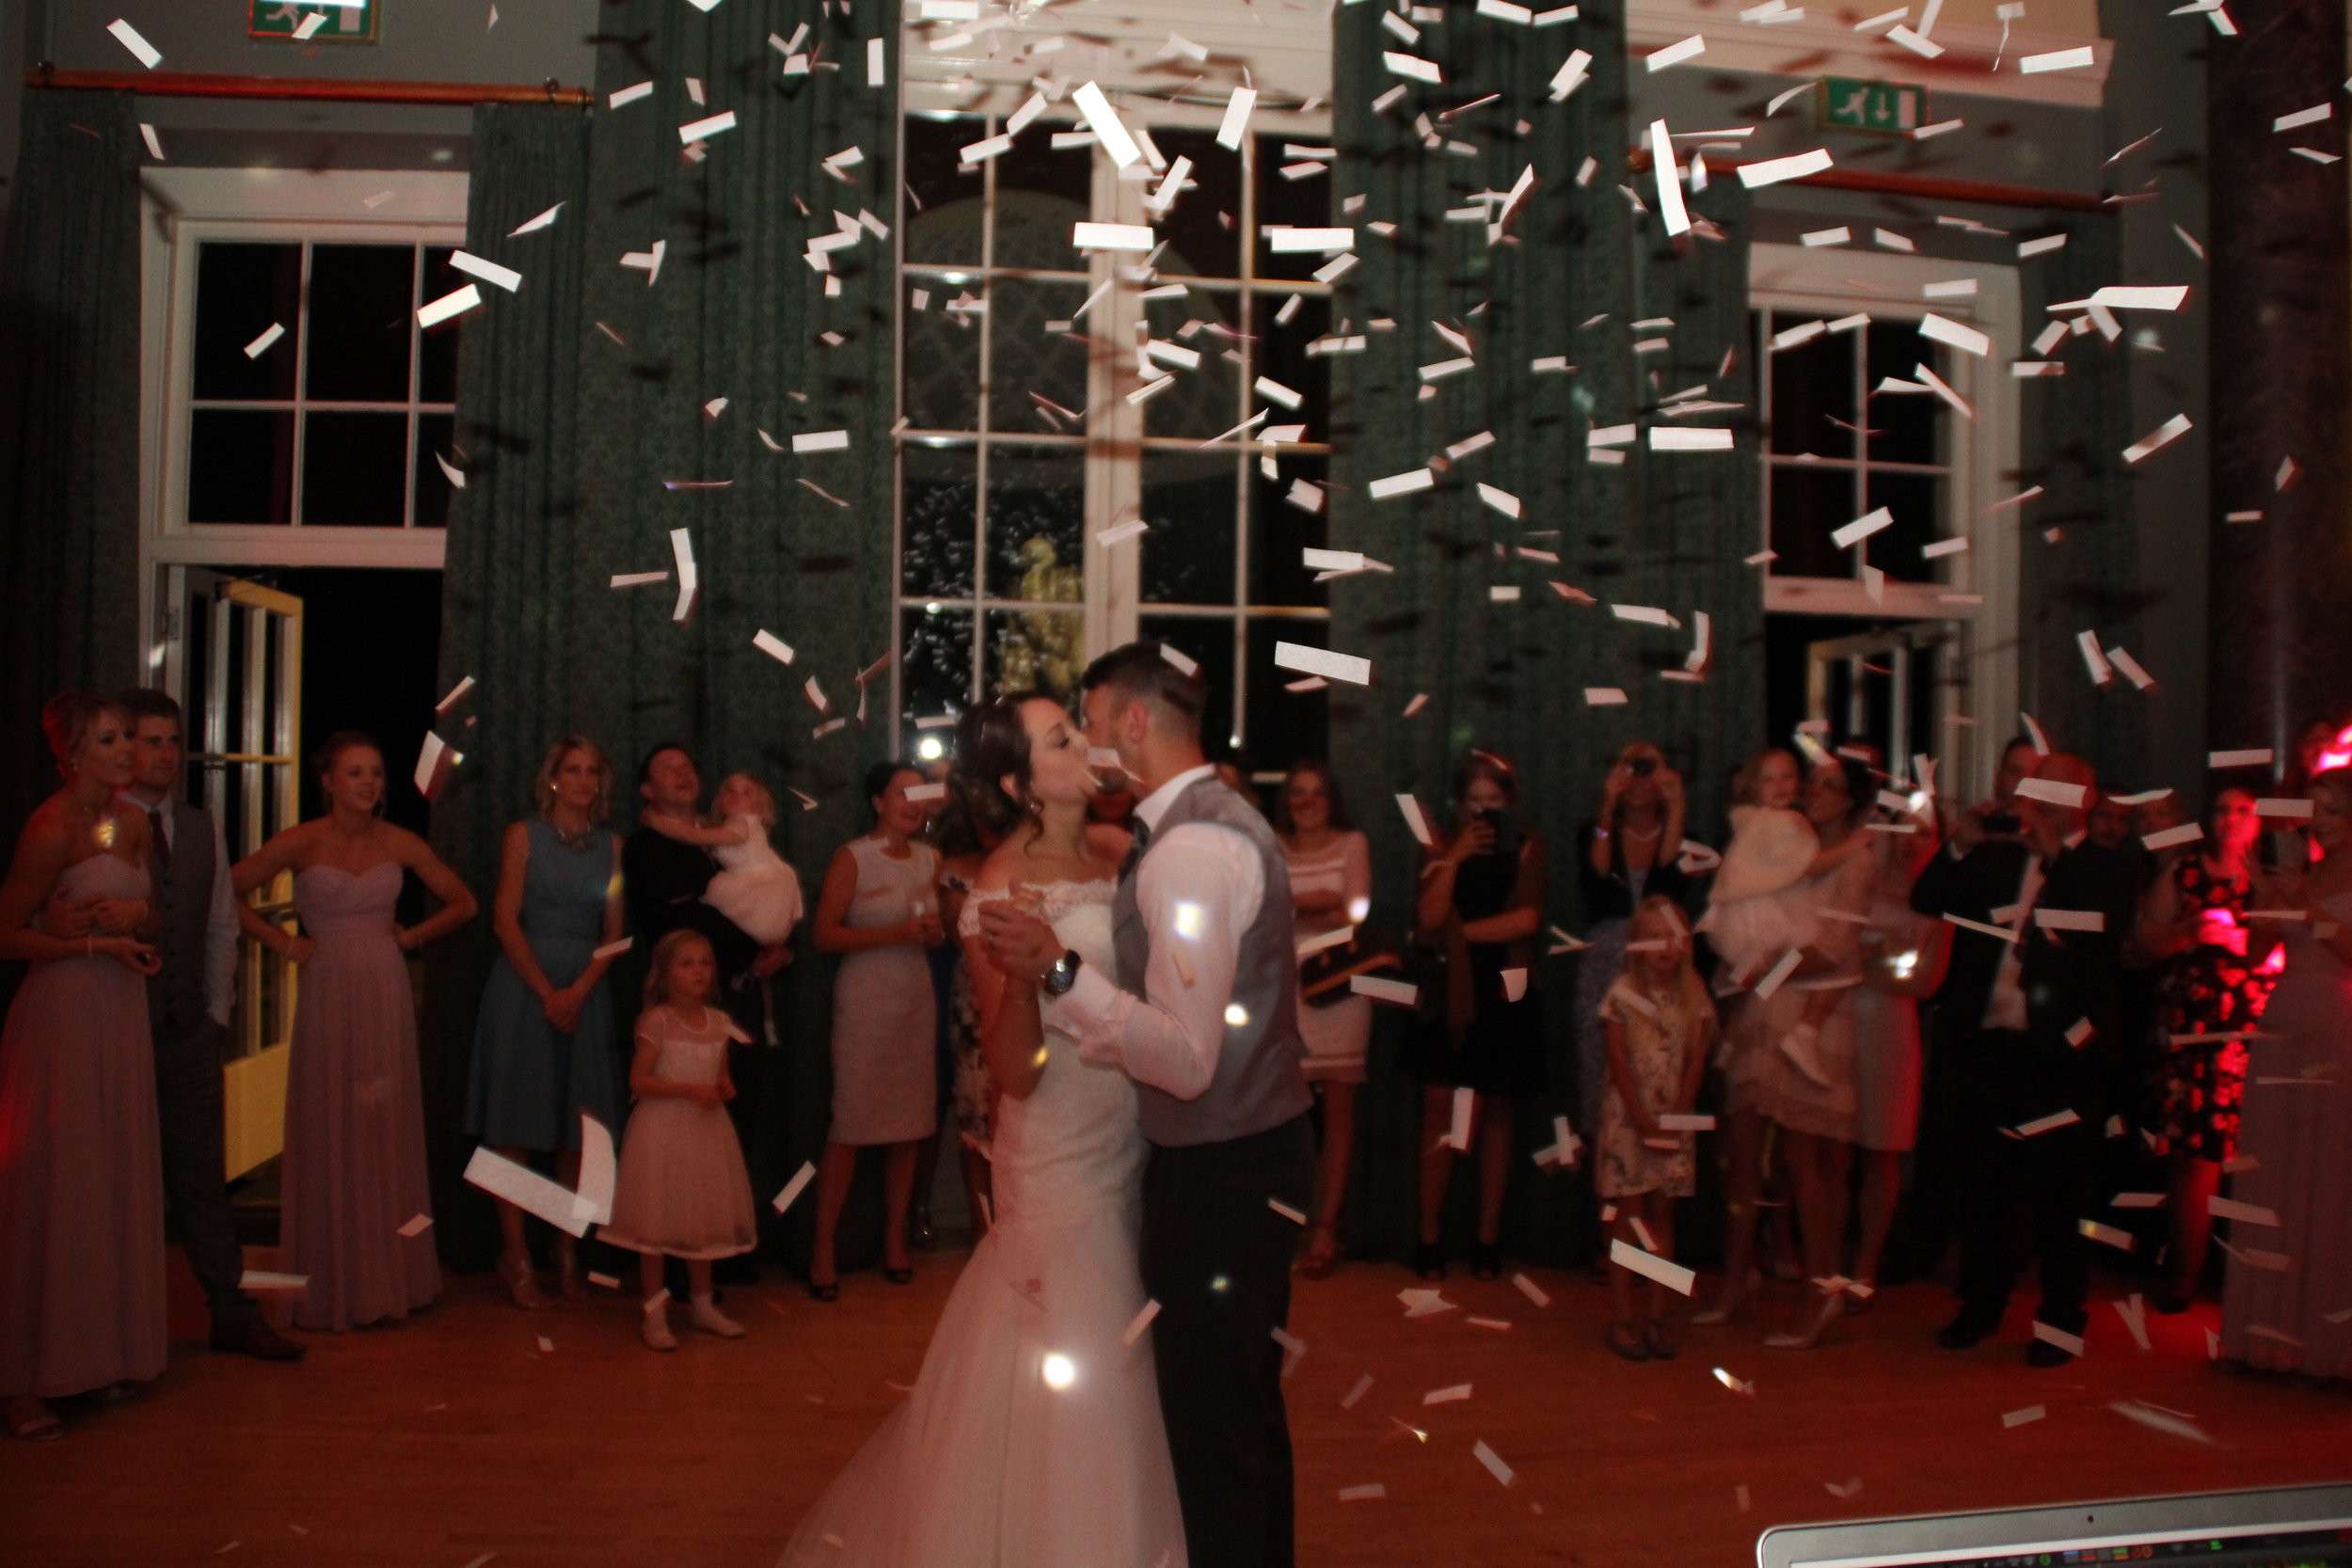 First dance with confetti Bluemark wedding DJ at The Sculpture Gallery